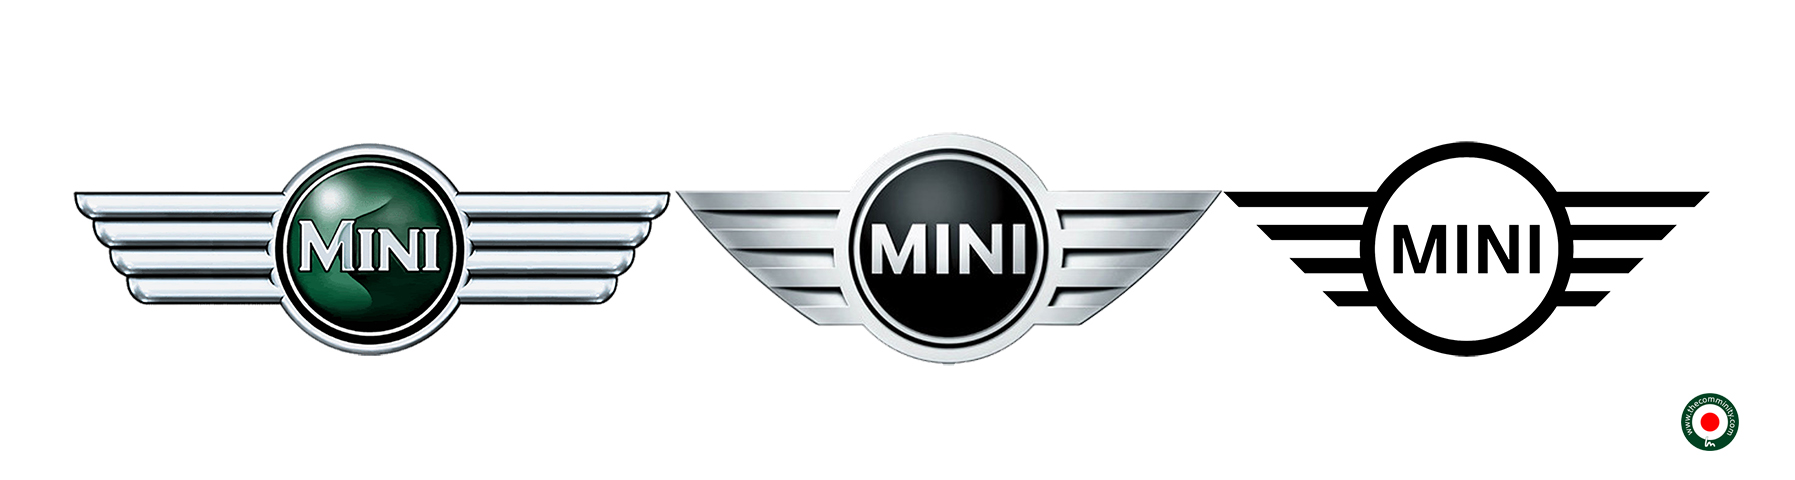 MINI new logo thecomminity